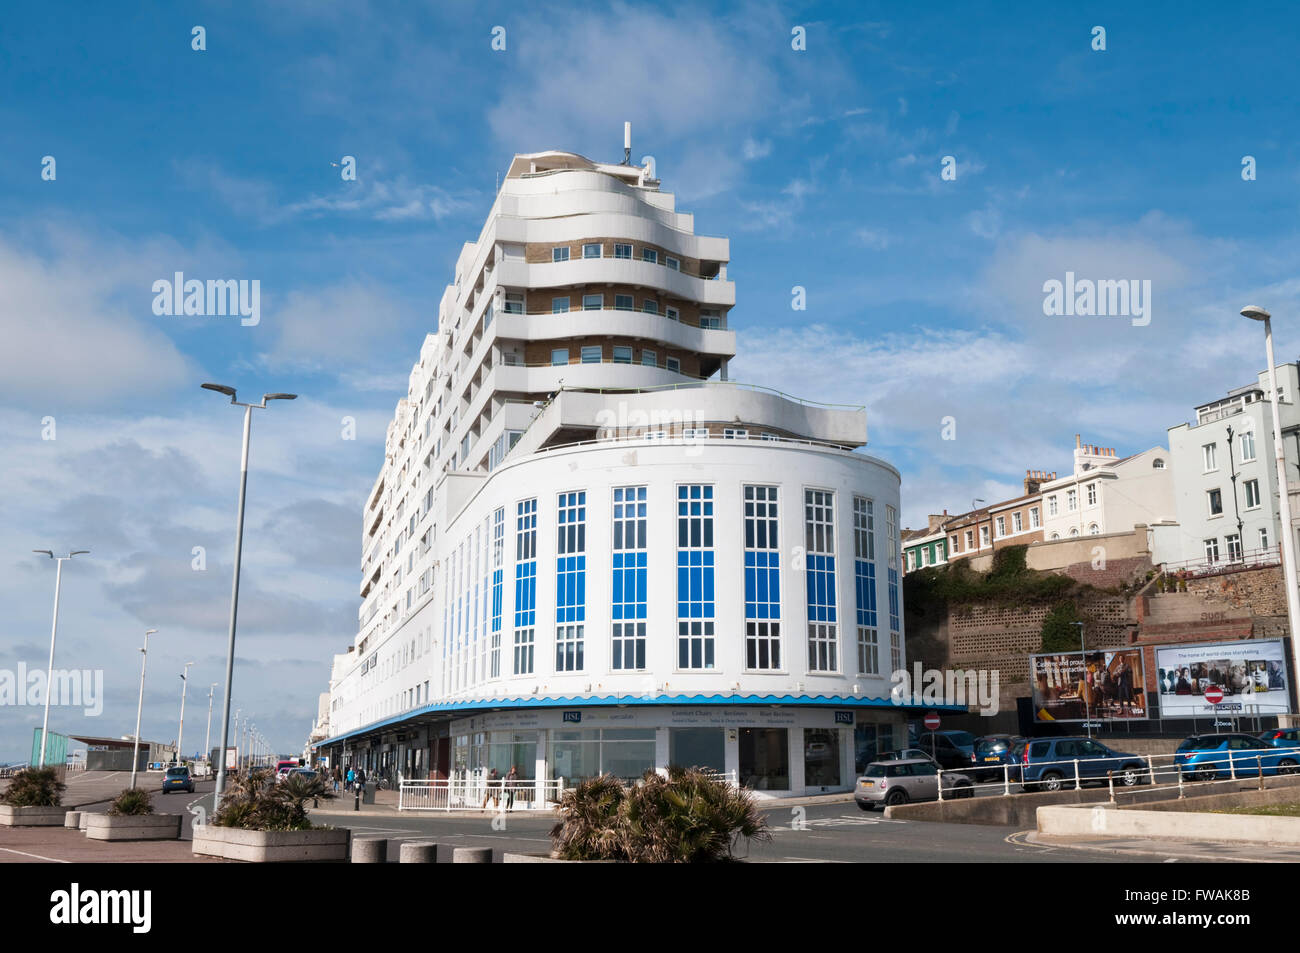 Marine Court in St Leonards-on-Sea, a striking art-deco building in the shape of an ocean liner - Stock Image